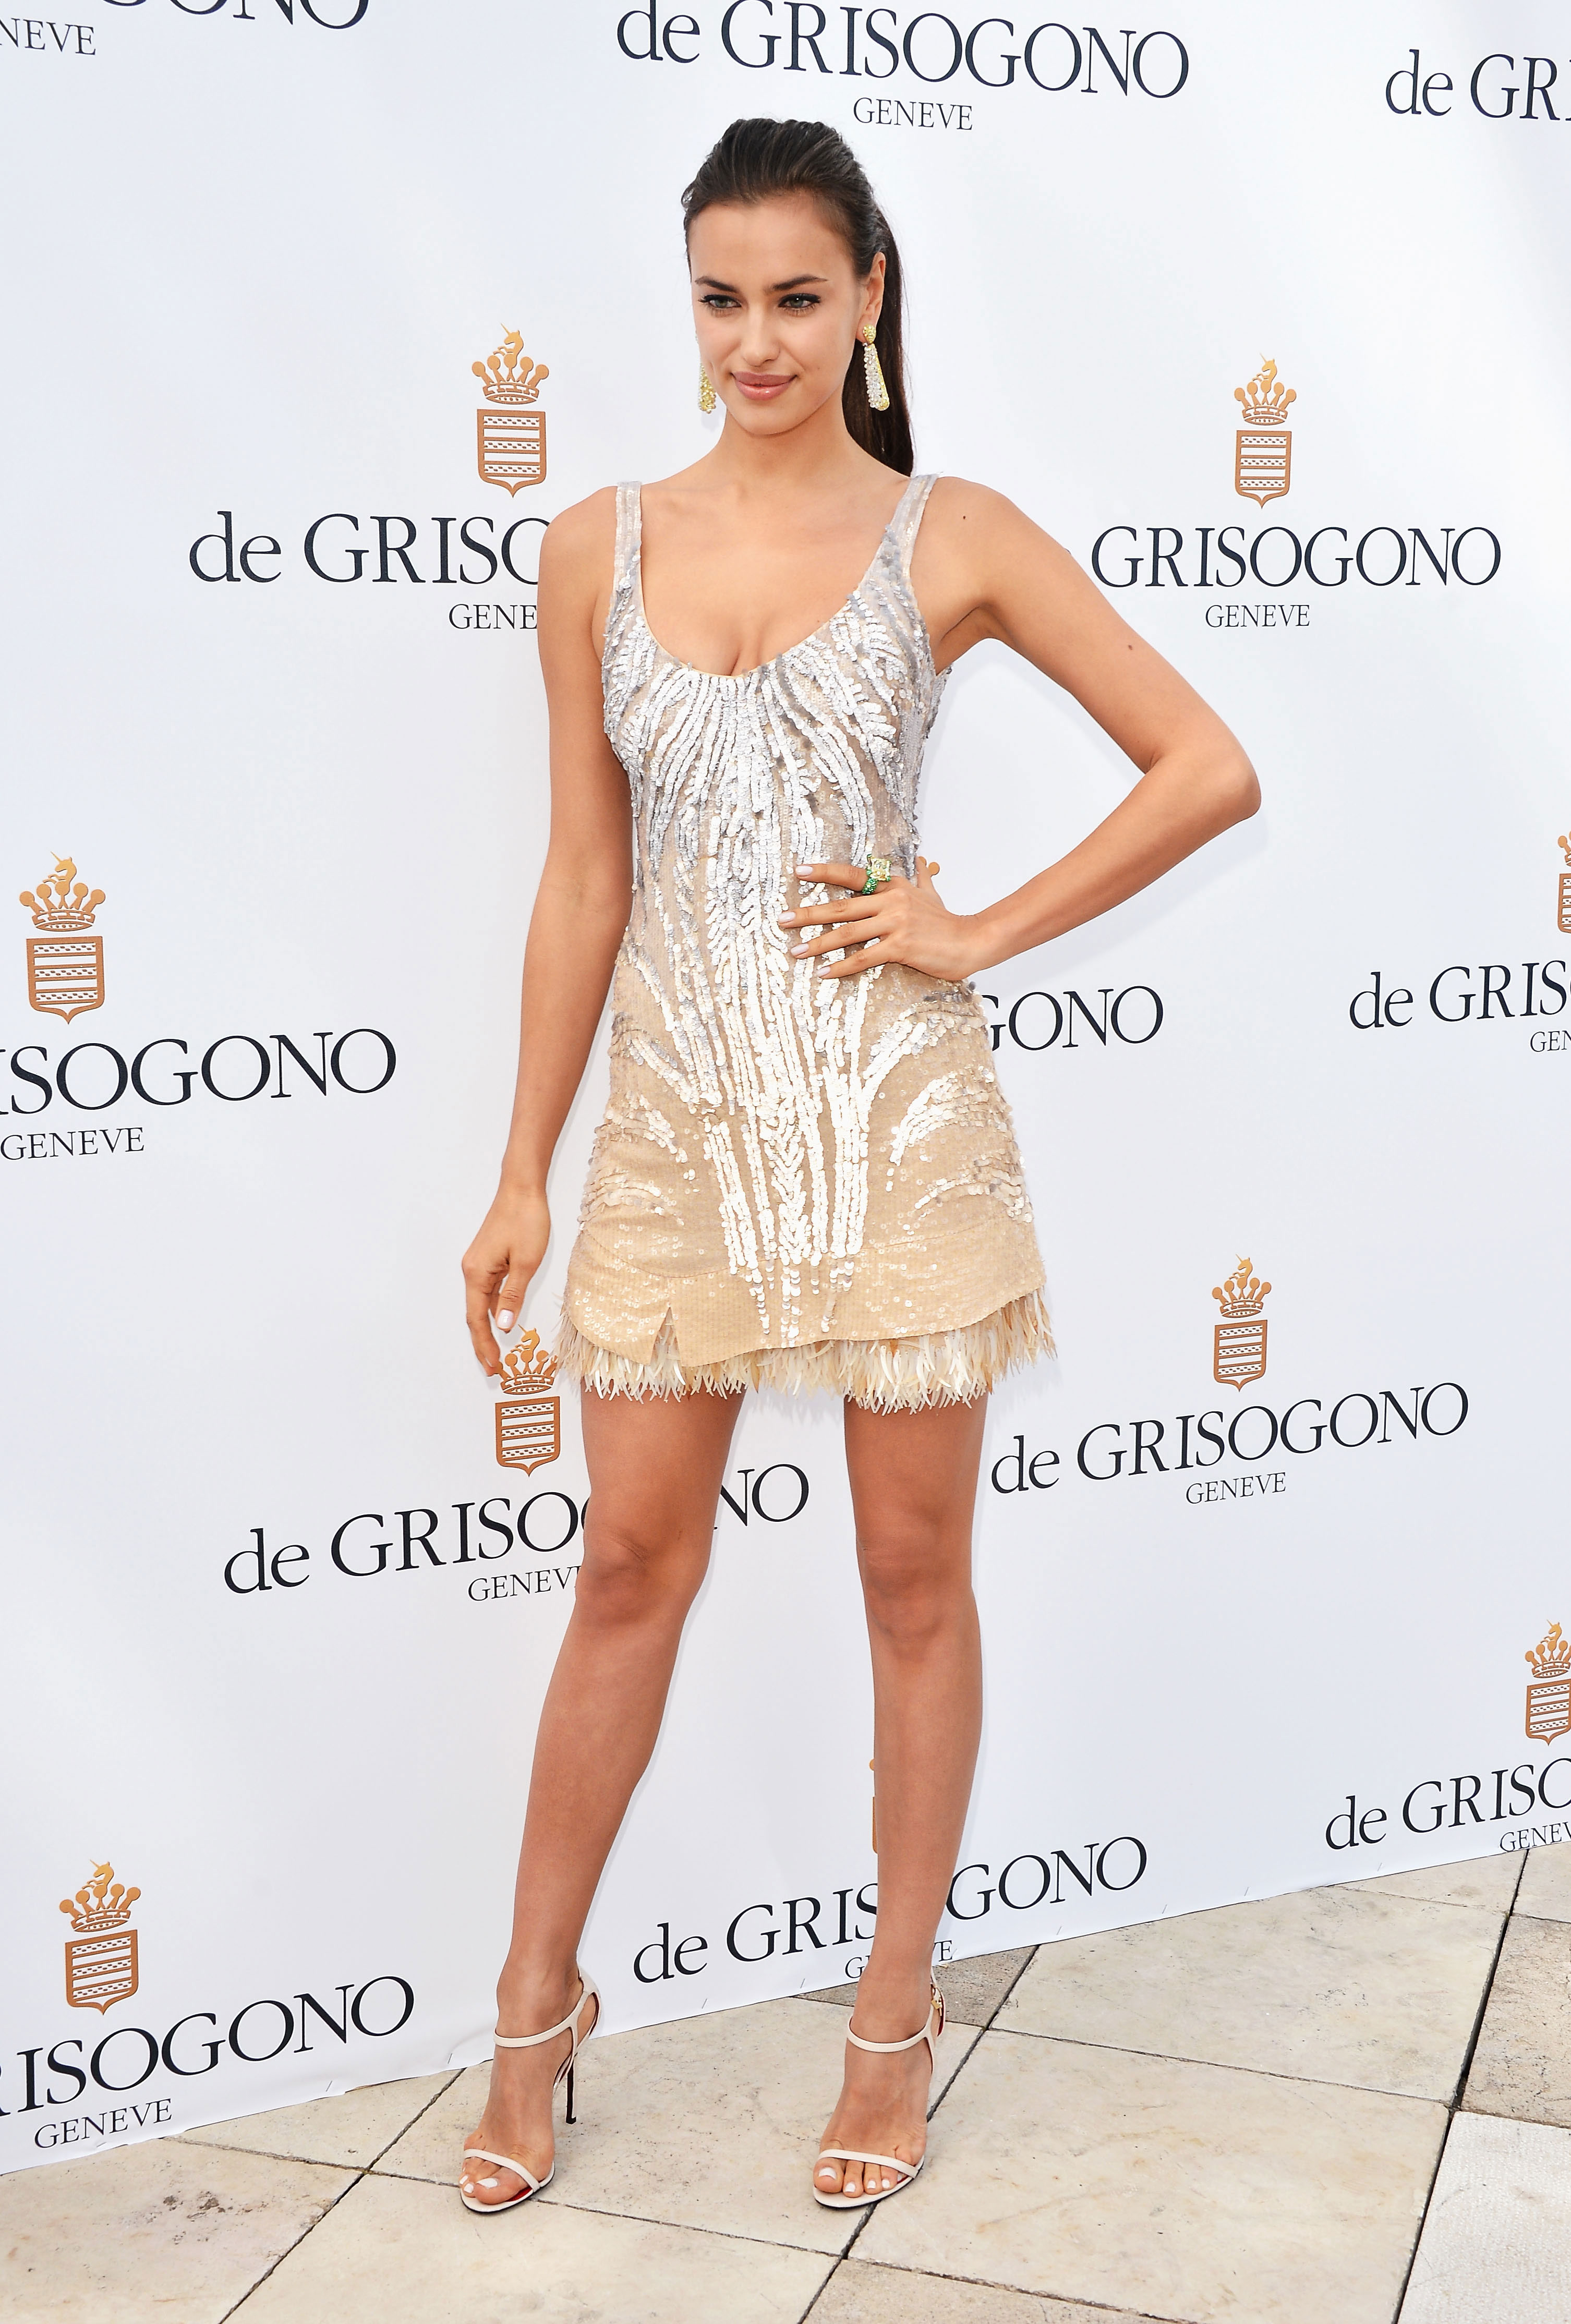 Irina Shayk poses at the de Grisogono Photocall during the 65th Annual Cannes Film Festival.